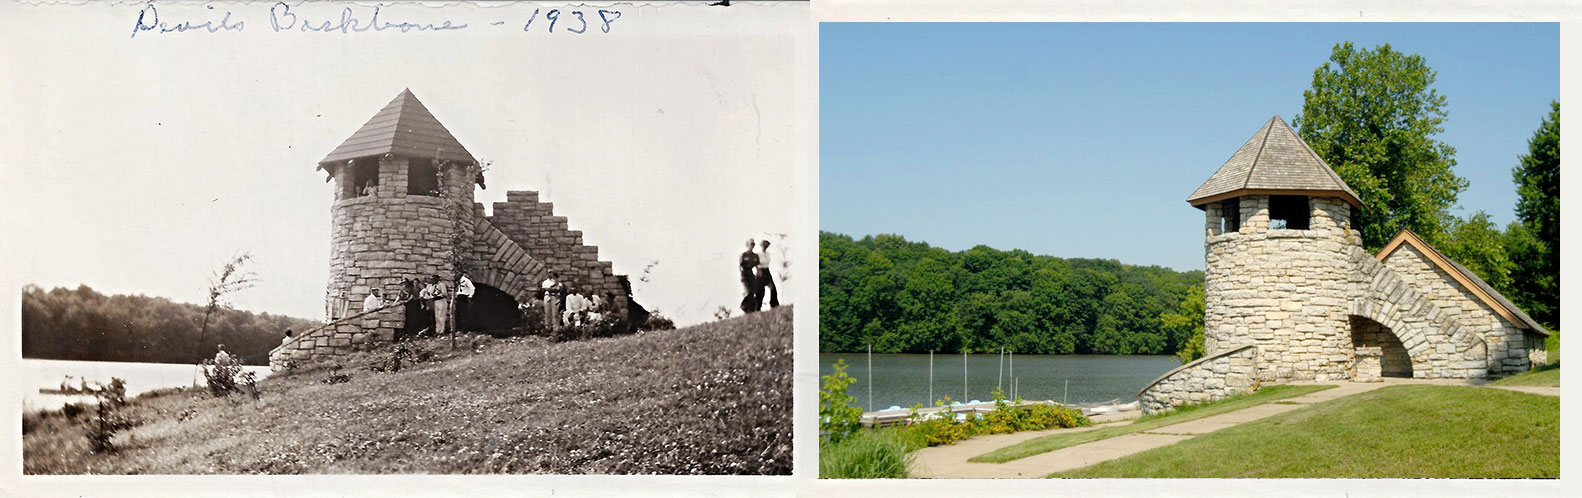 backbone state park, tower in 1938 and present day